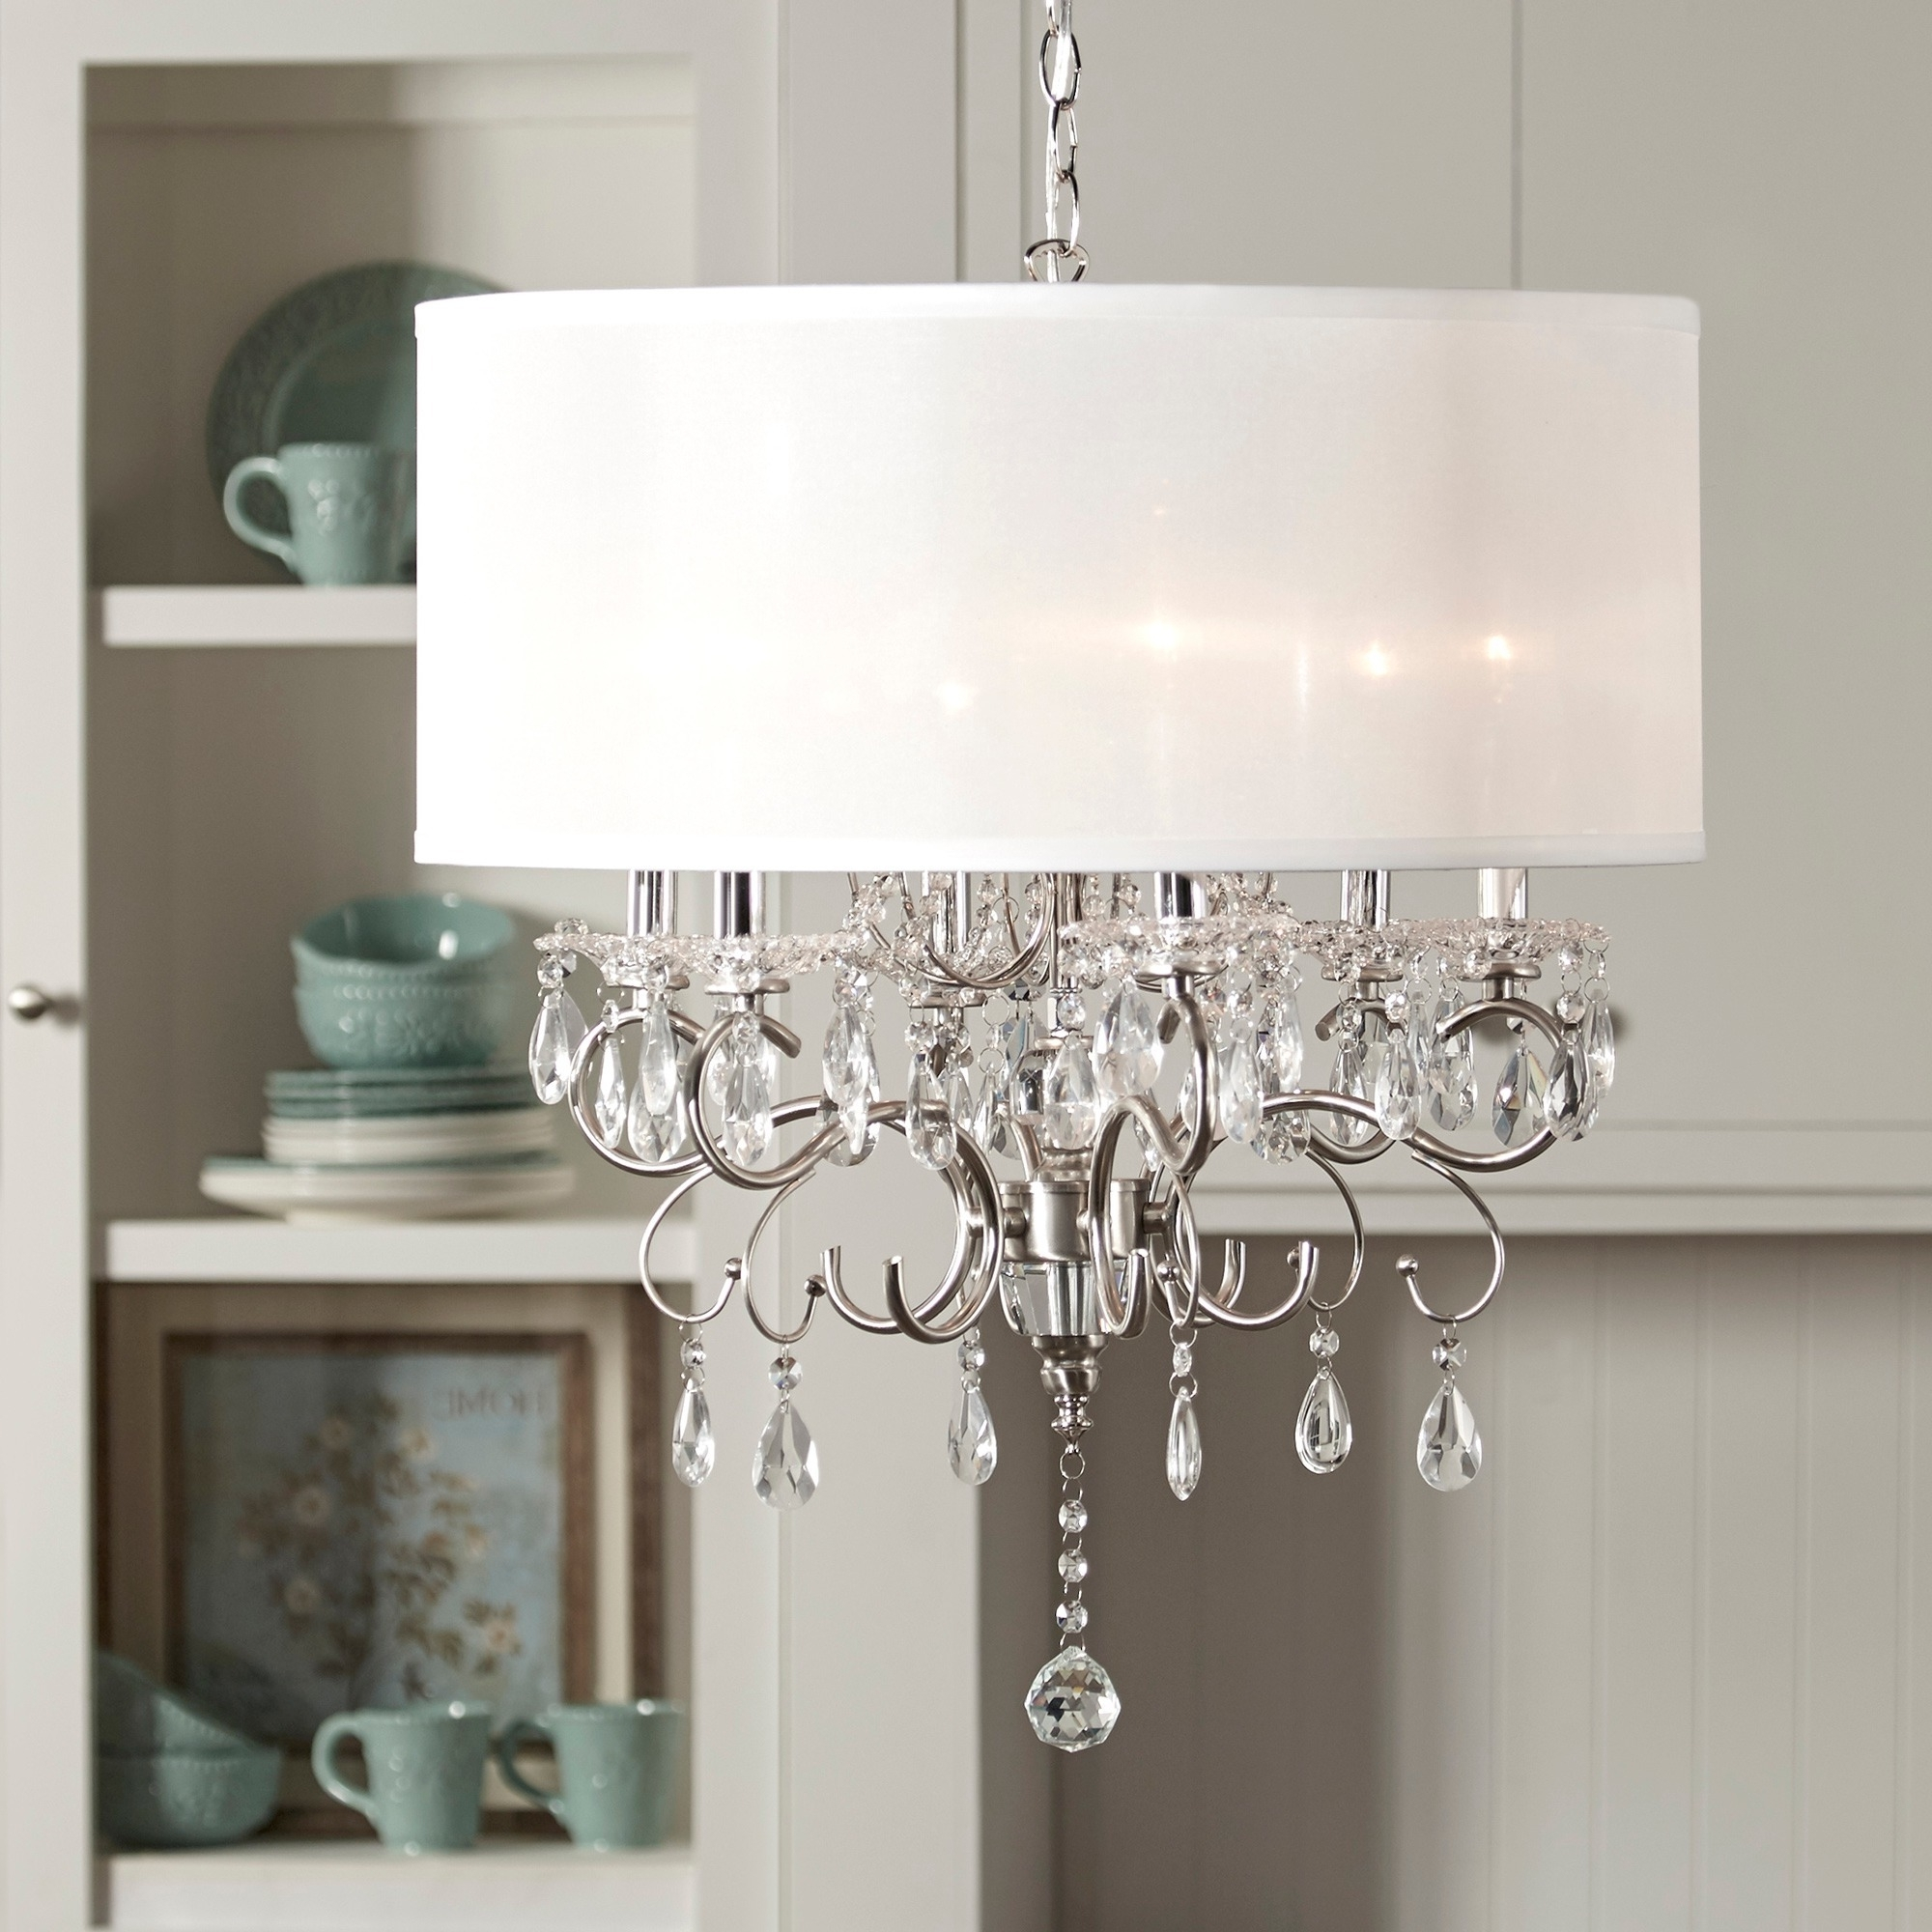 Excellent Light Shades Of Grey Html Purple Names Shade Blue Regarding Latest Lampshade Chandeliers (View 10 of 15)